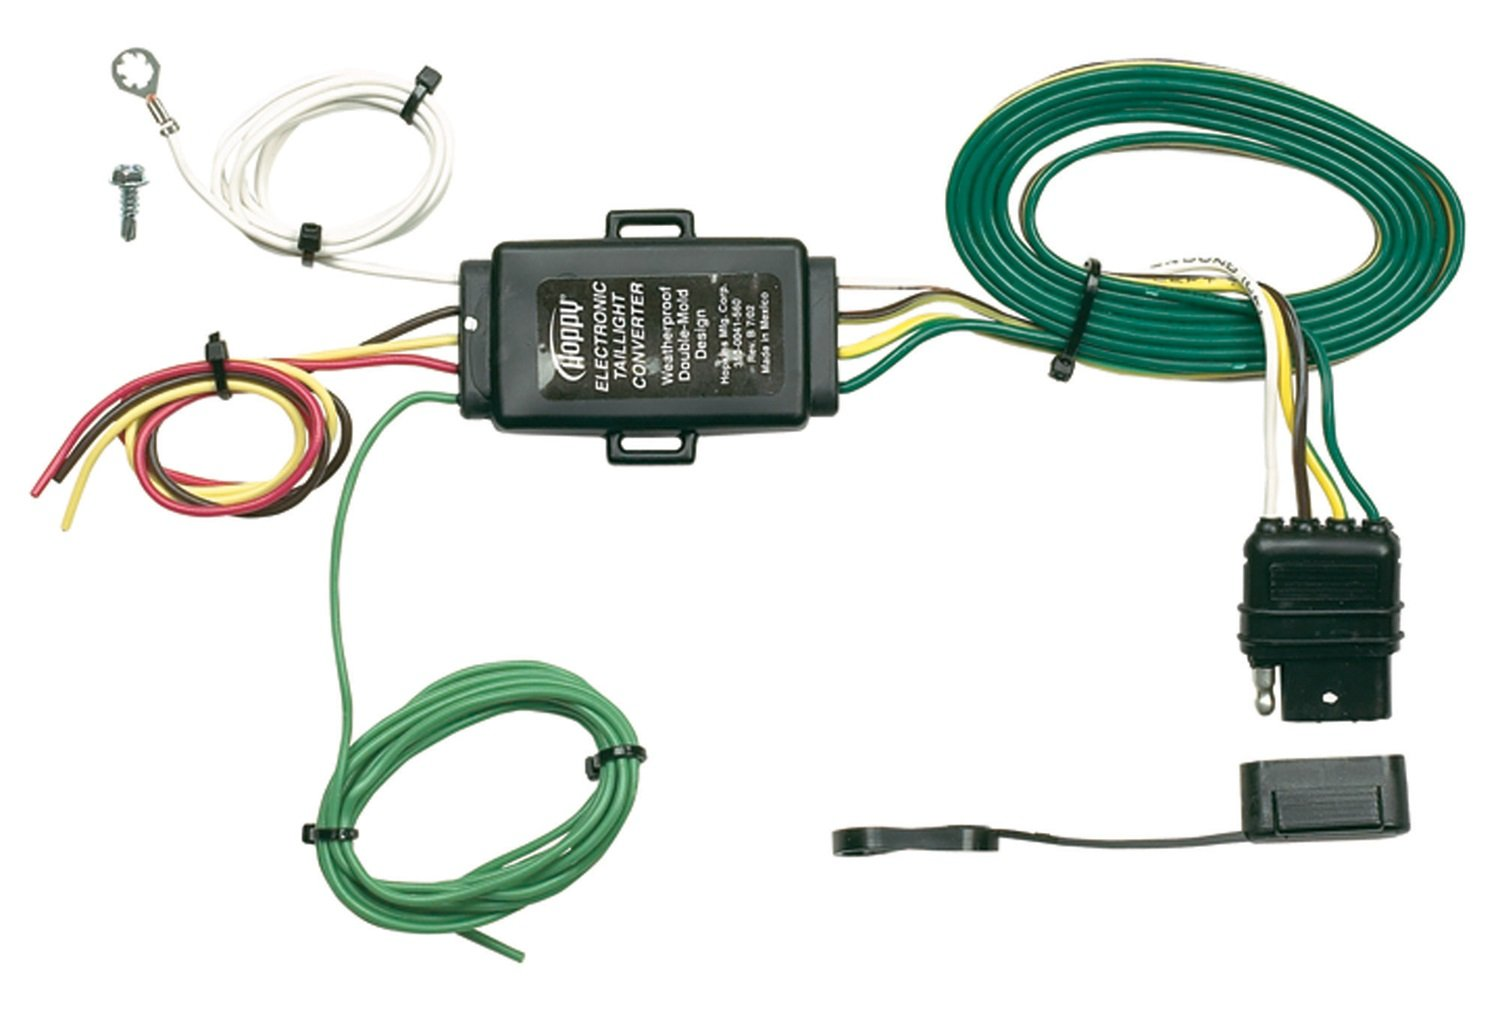 61WaHisQCLL._SL1500_ amazon com hopkins 48925 tail light converter with 4 wire flat hopkins 7 wire plug wiring diagram at soozxer.org